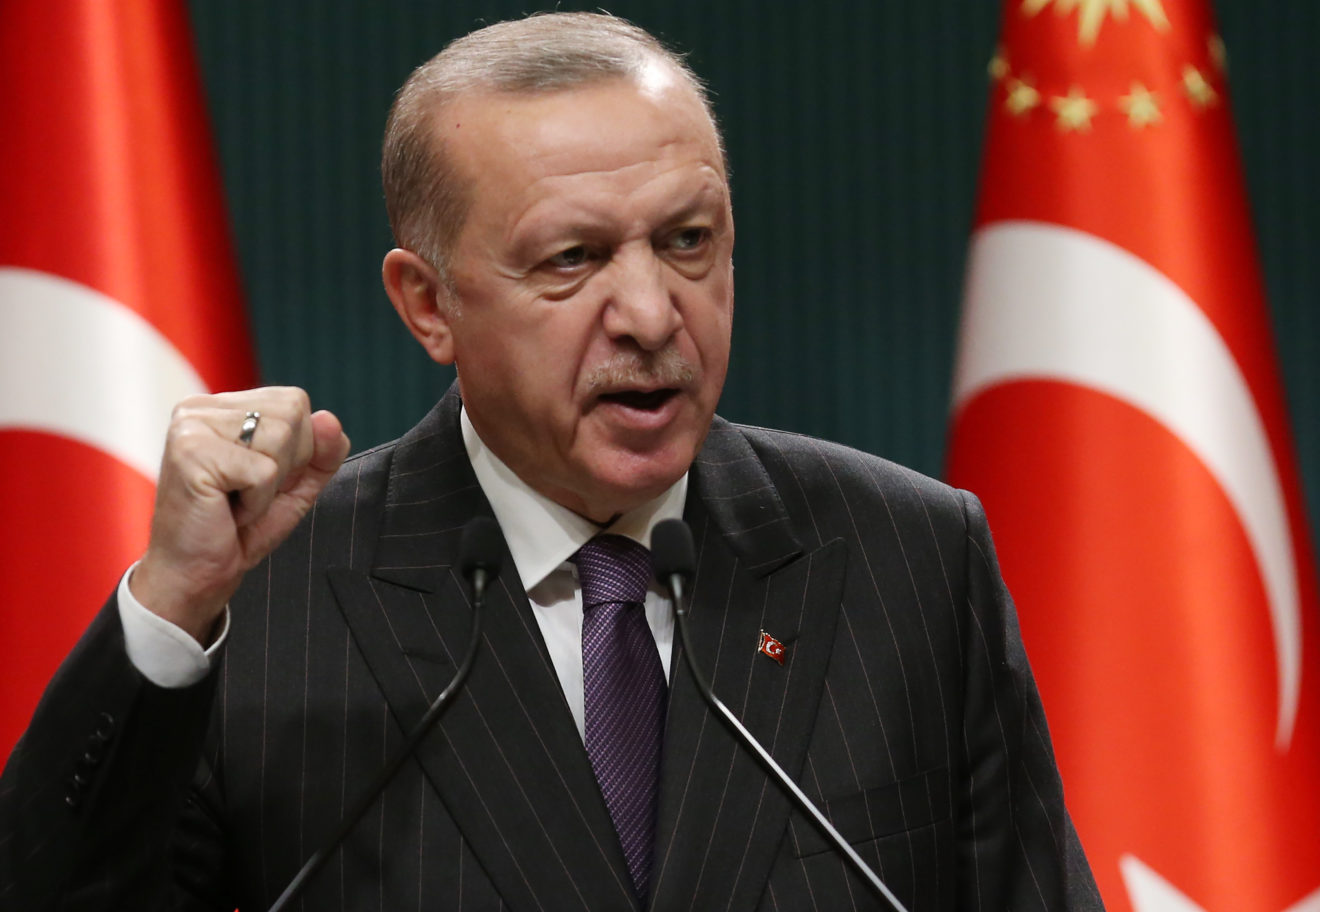 Erdogan steps back from threat to expel 10 foreign envoys